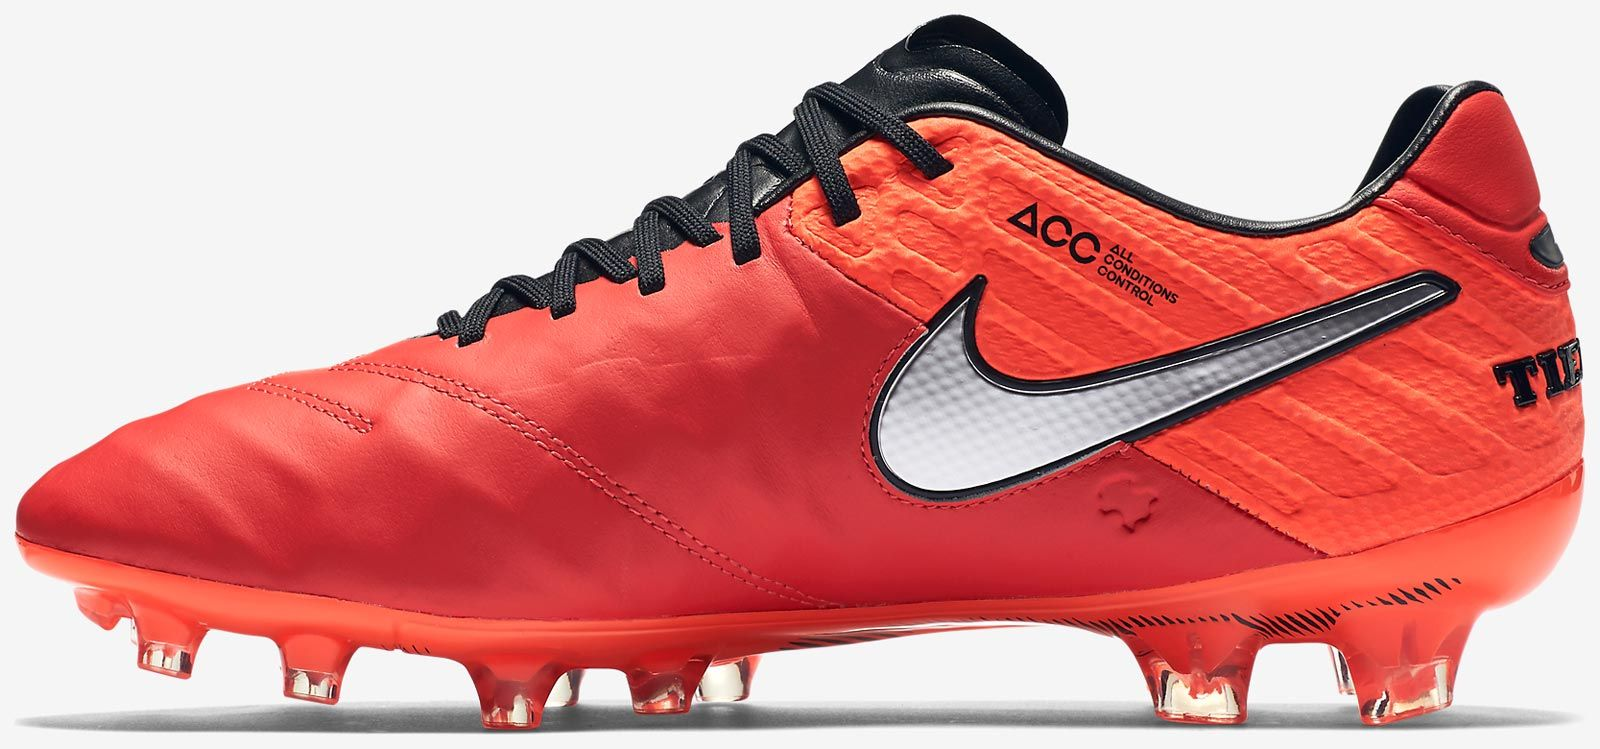 b2983d316 Red Next-Gen Nike Tiempo Legend 6 2016 Boots Released - Footy ...